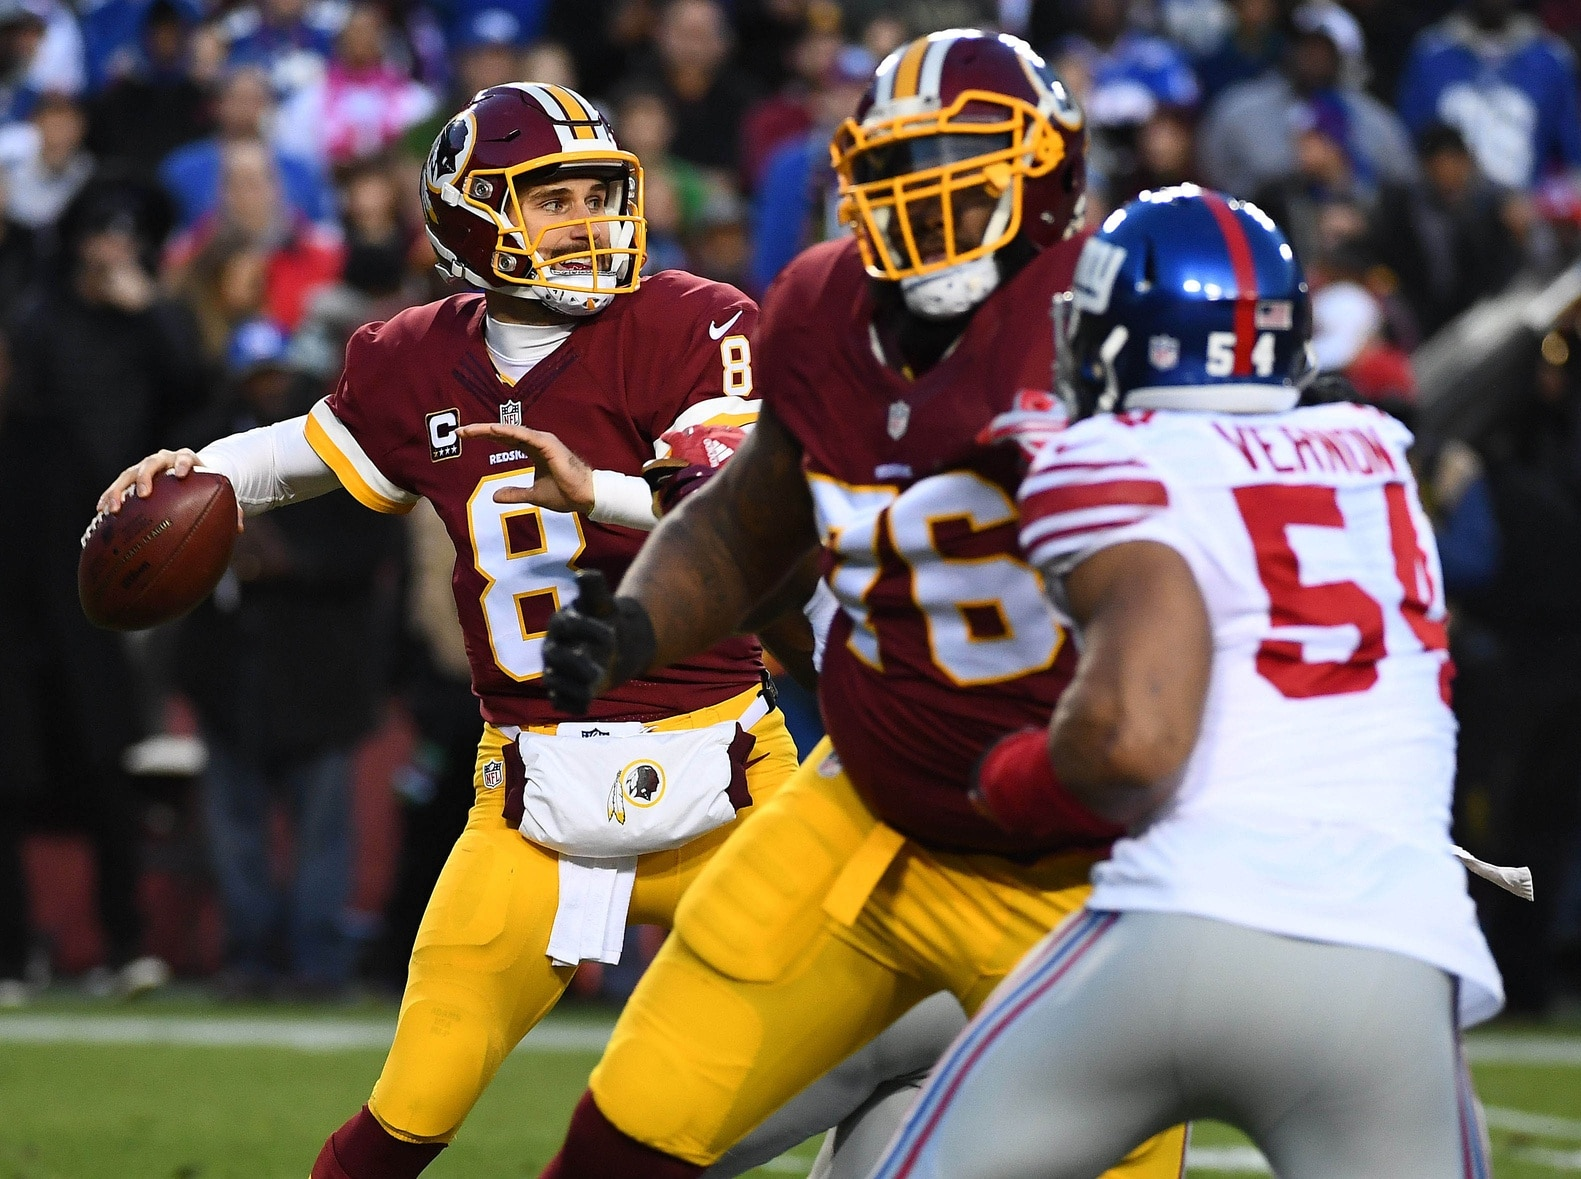 Kirk Cousins' future in Washington Redskins is up in the air